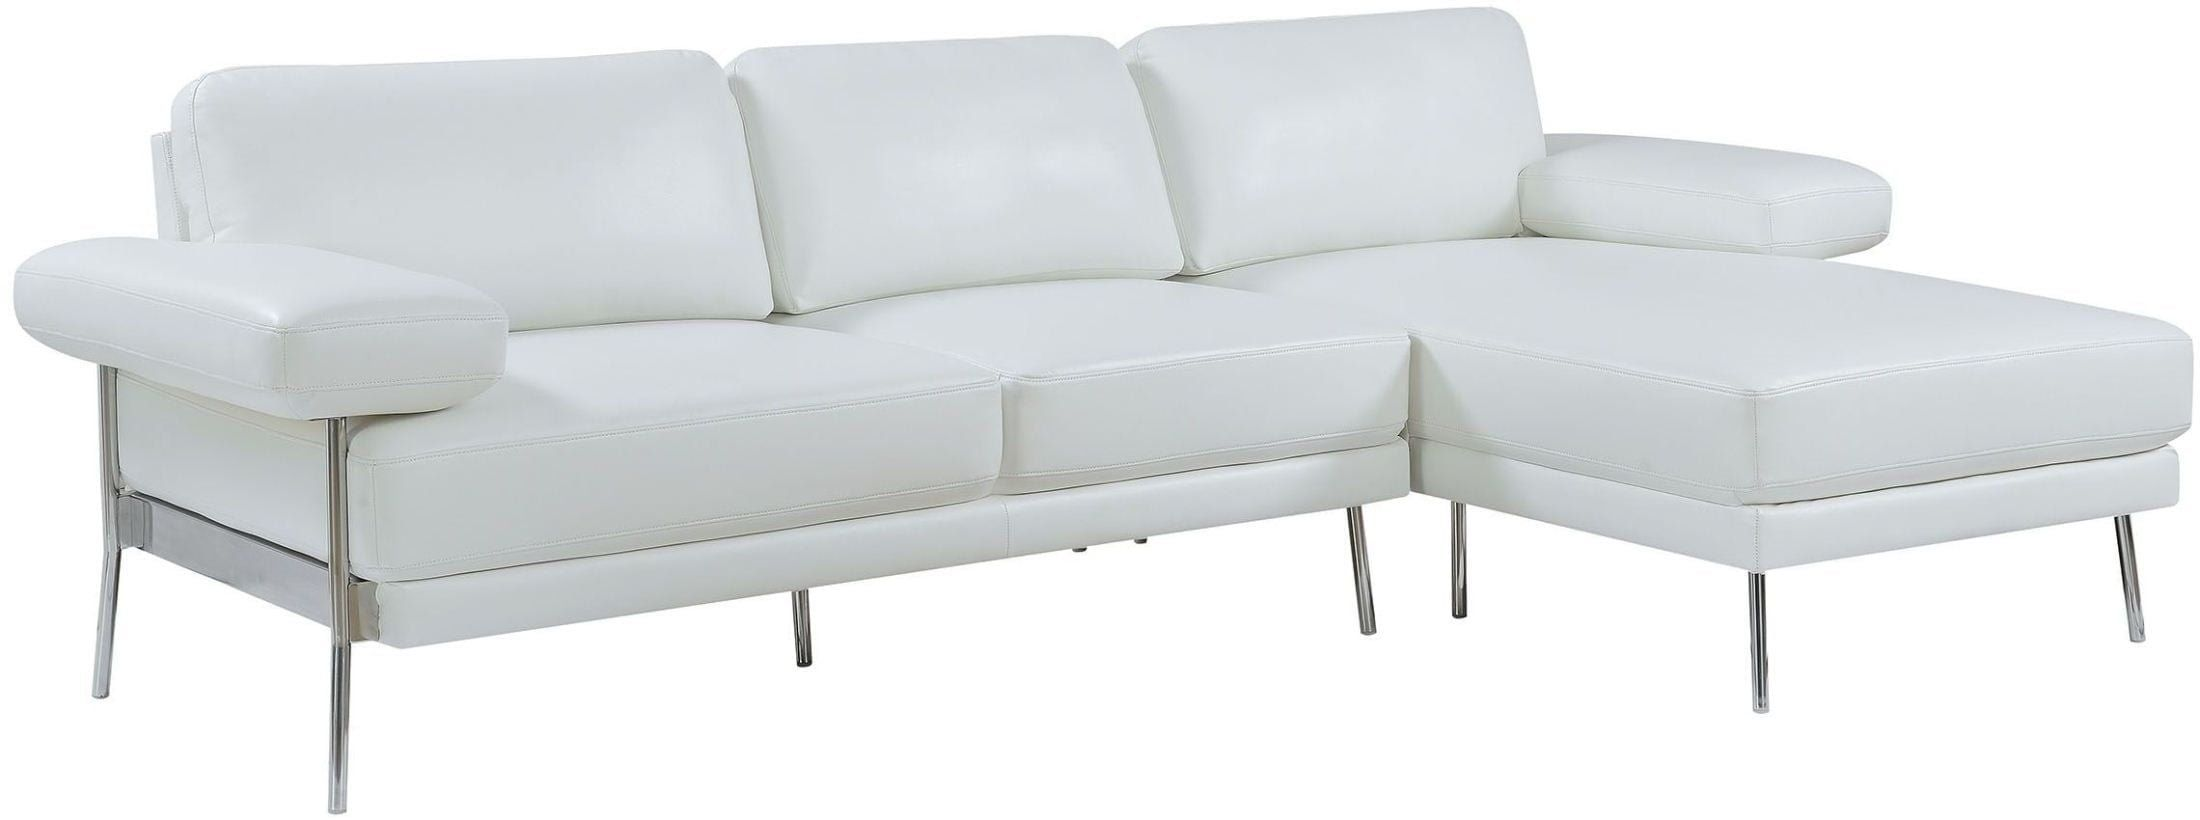 Esofastore Classic Contemporary Sectional Sofa Set Chrome Legs Breathable Leatherette White Sofa Chaise Furniture Contemporary Sectional Sofa Plaid Living Room